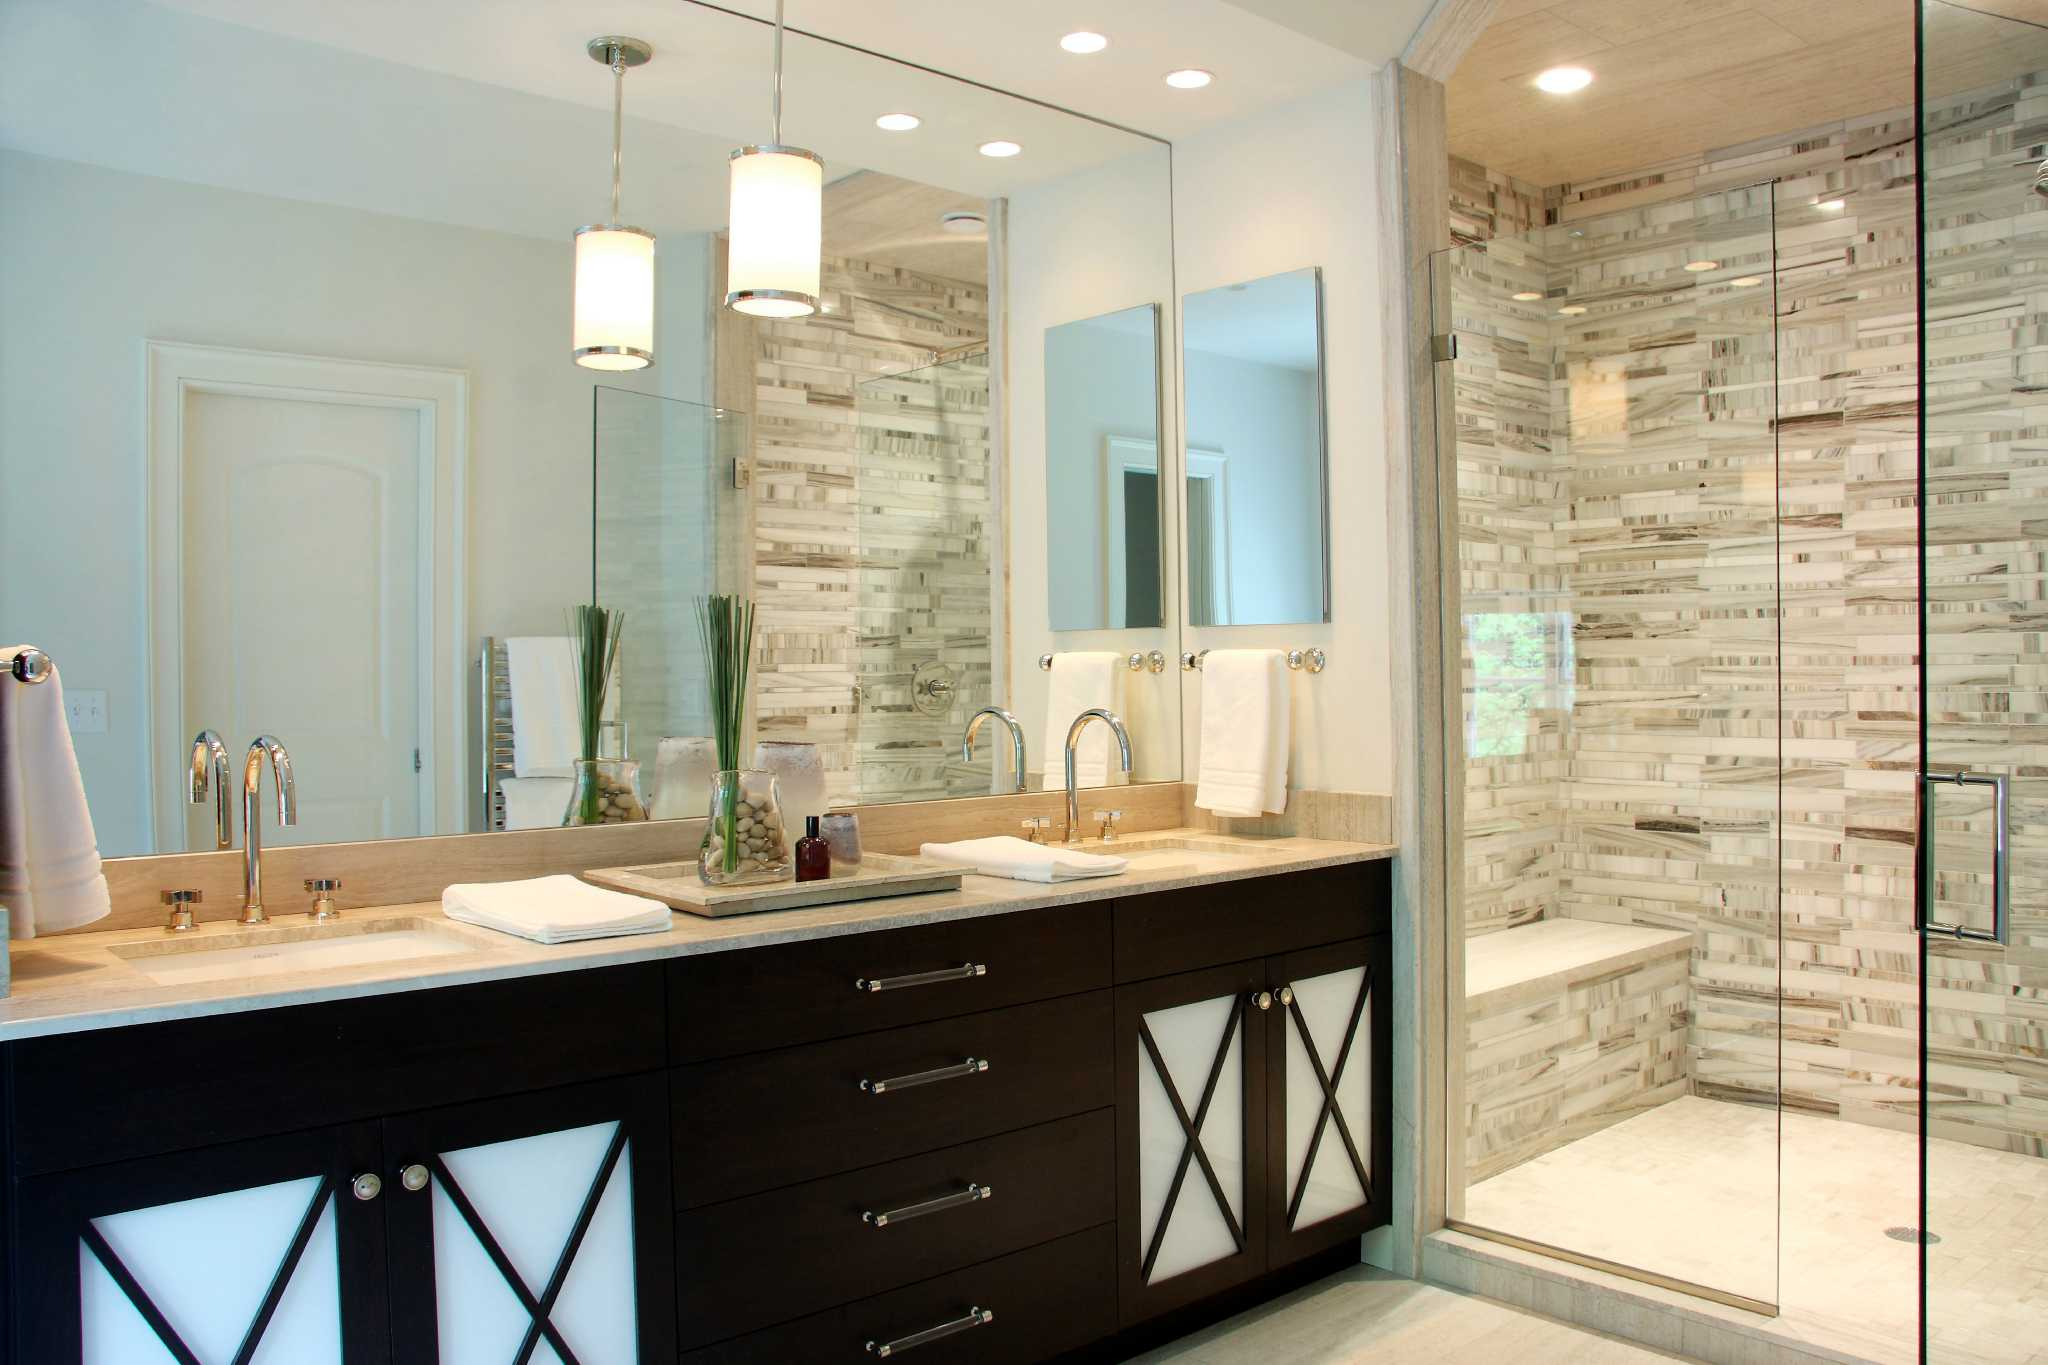 Spa like feel wanted for today 39 s bathroom connecticut post for Bathroom cabinets york pa